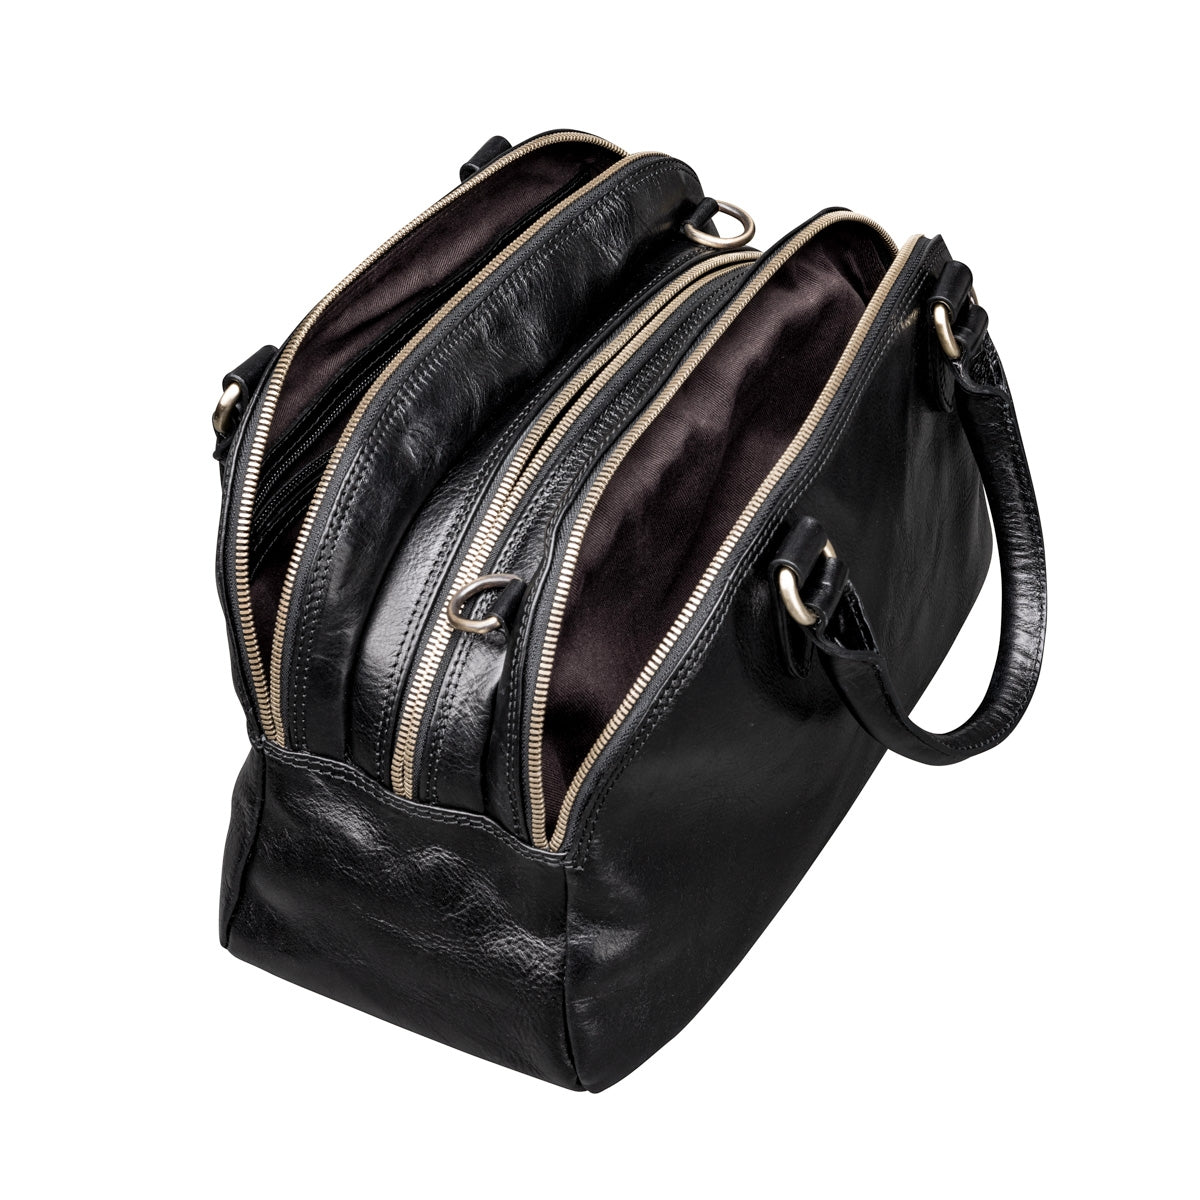 Image 5 of the 'Liliana' Black Veg-Tanned Leather Bowling Bag